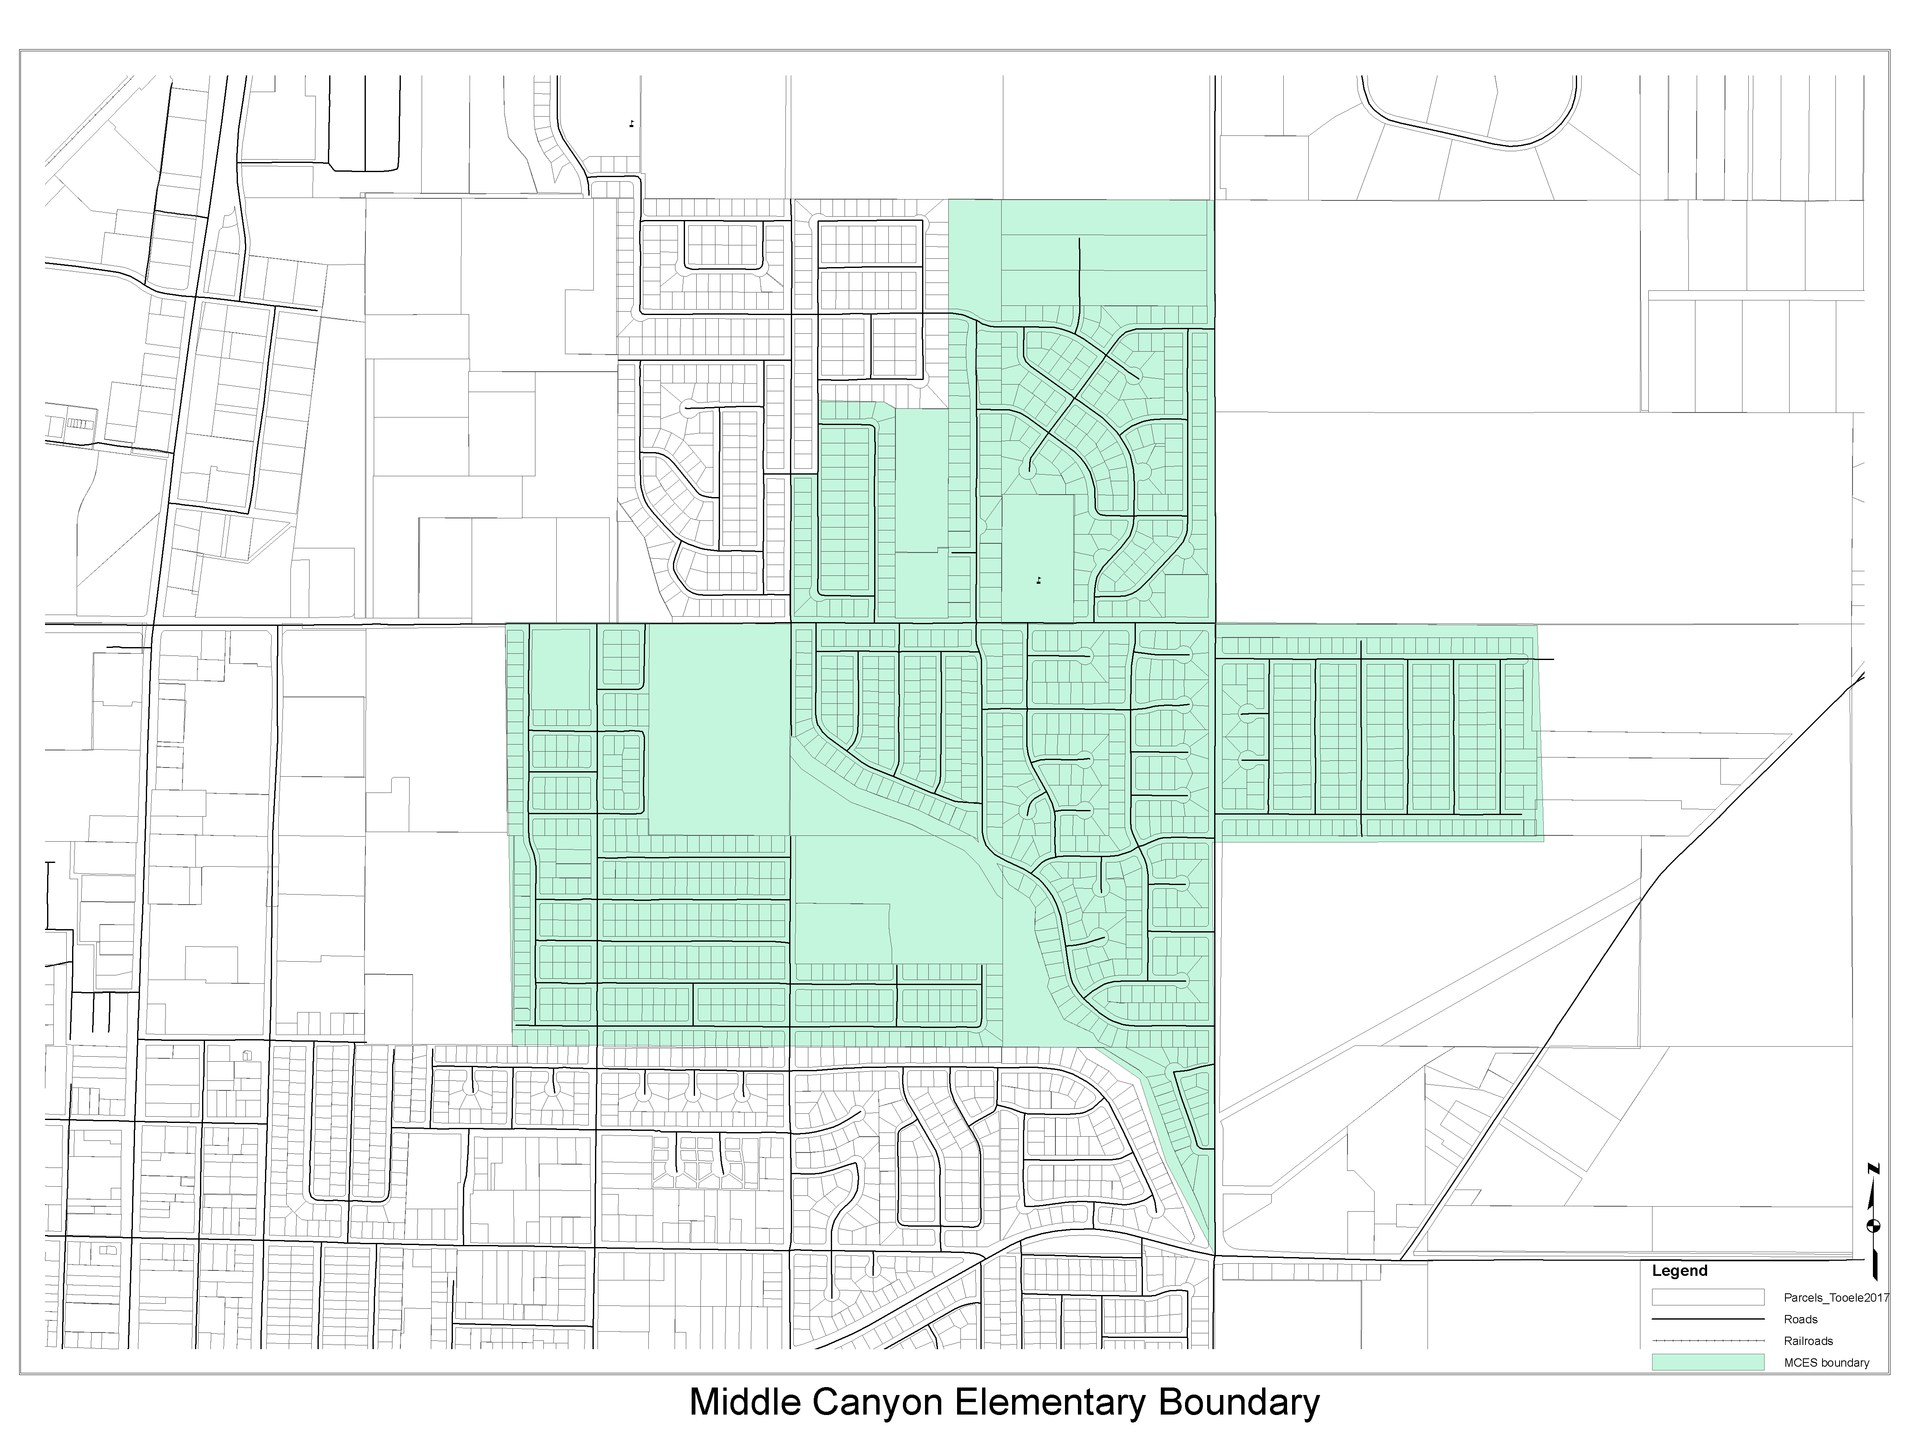 Middle Canyon Elementary Boundary